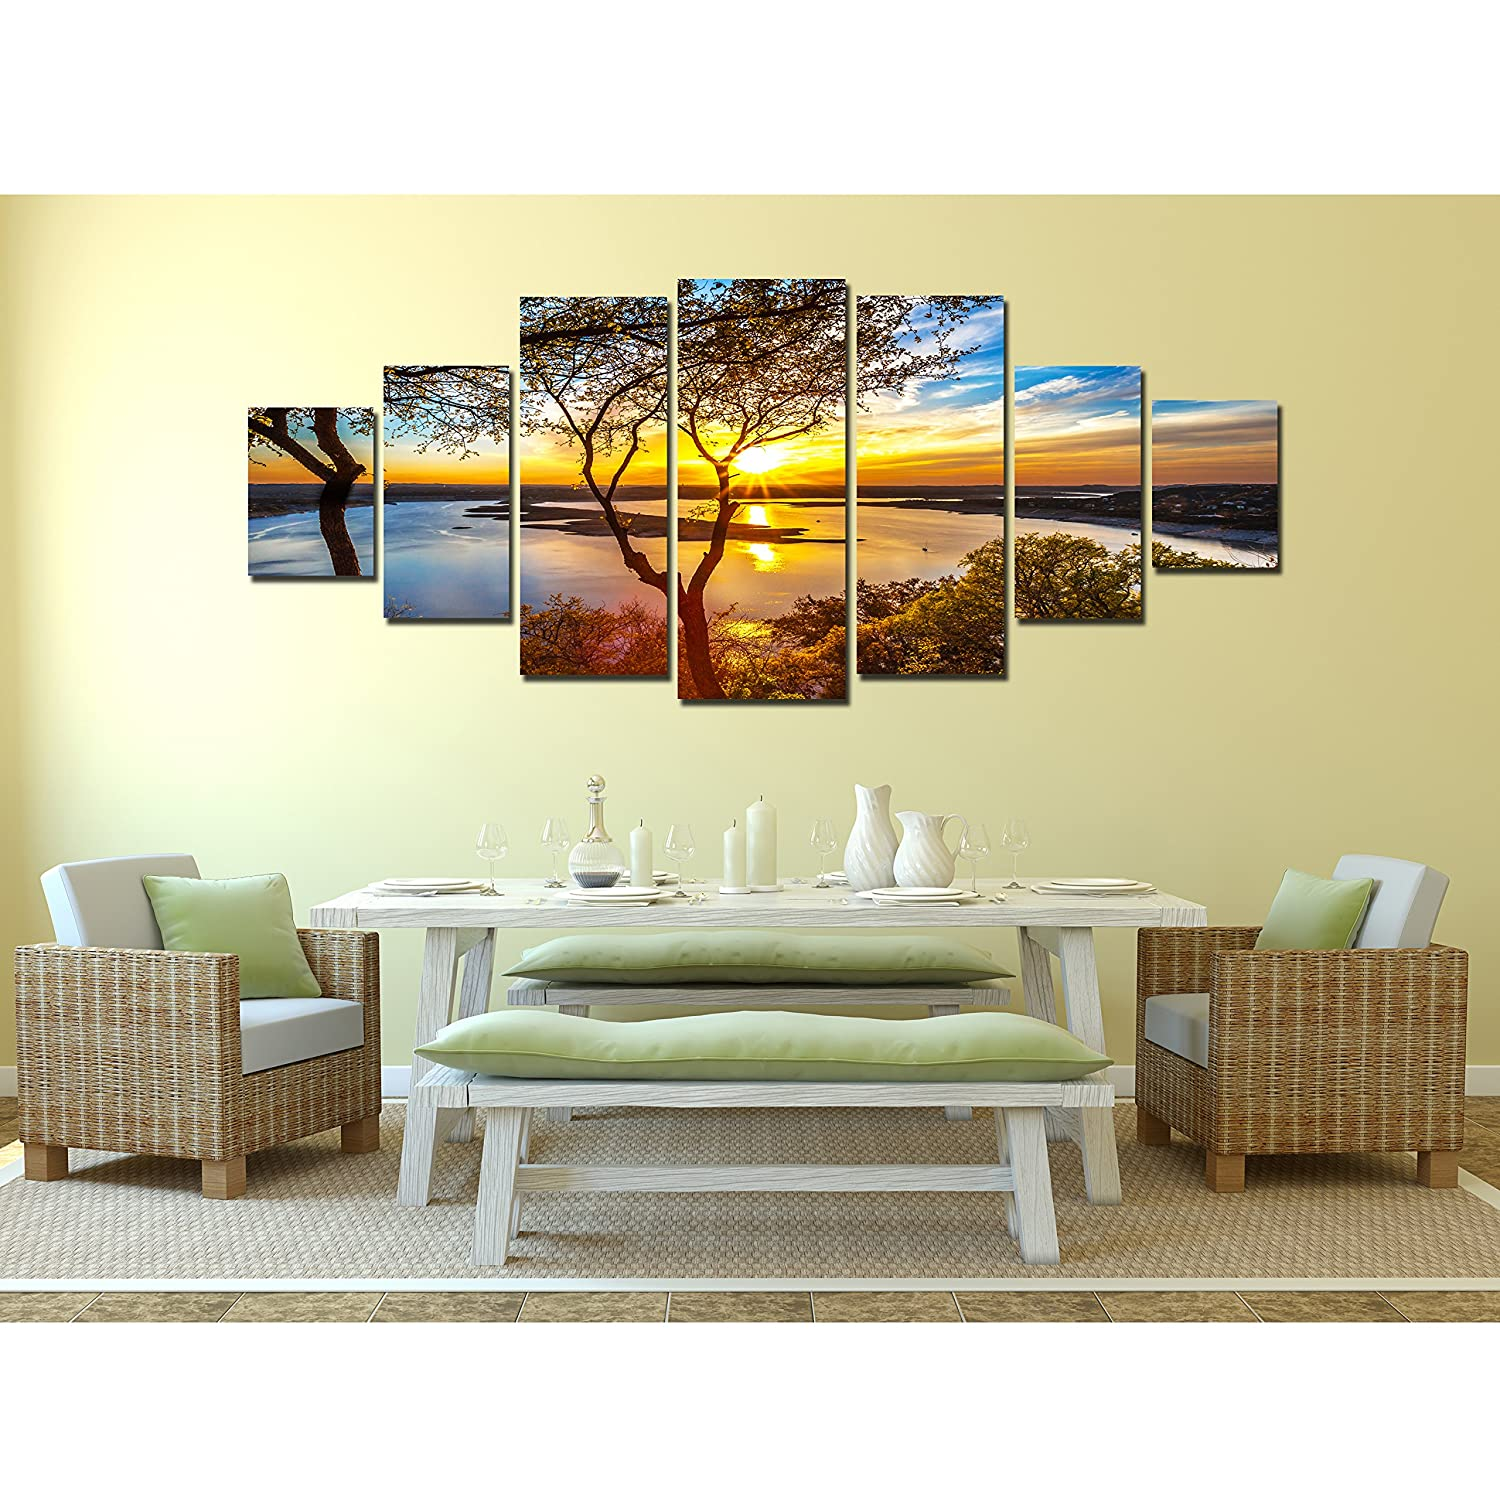 Amazon.com: Startonight Huge Canvas Wall Art Sunrise On The Lake ...